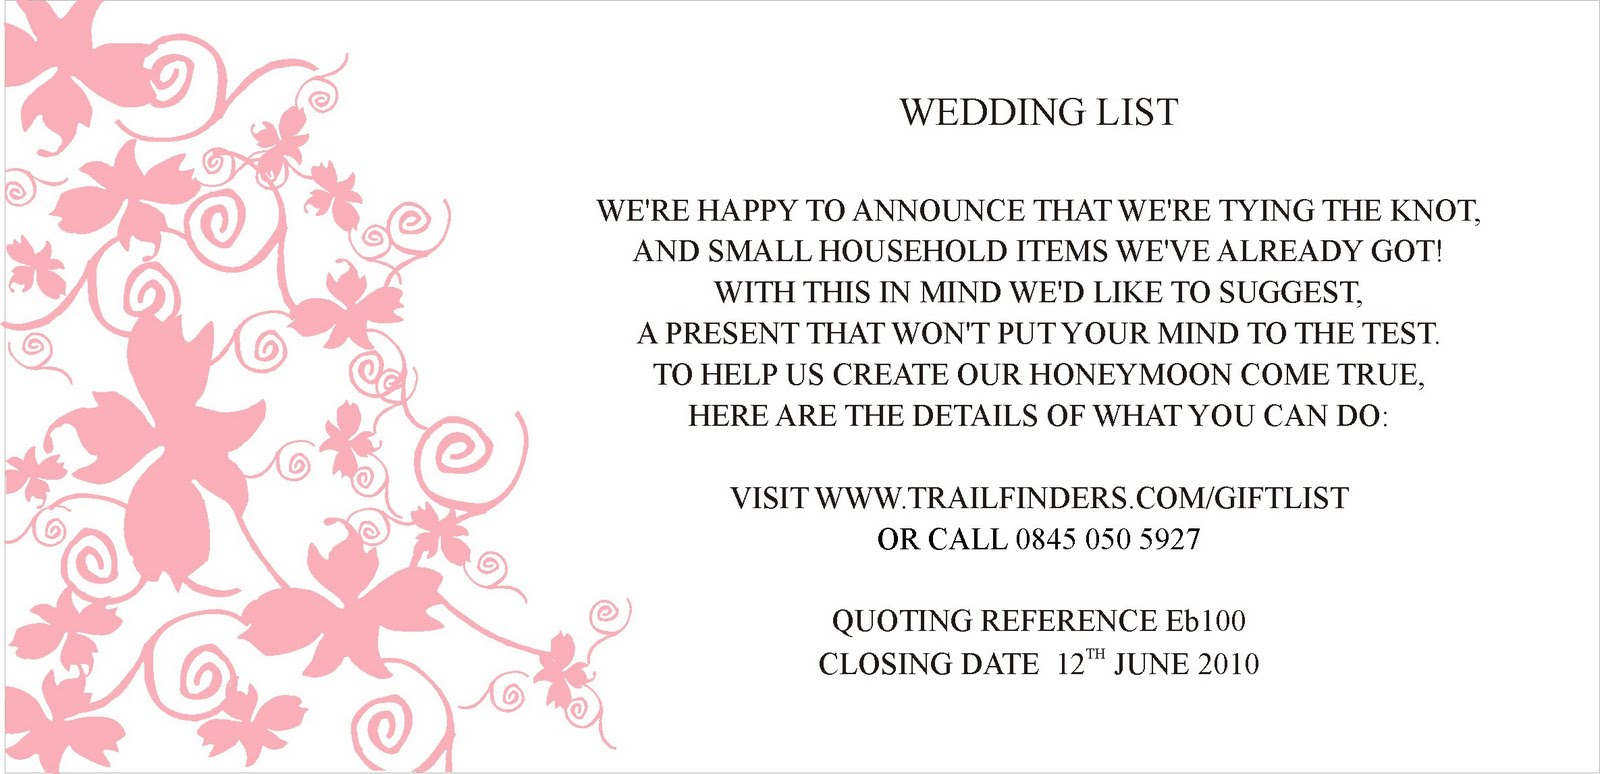 Wedding Gift List For Money : wedding gift card serves a practical purpose, saving you from ten ...